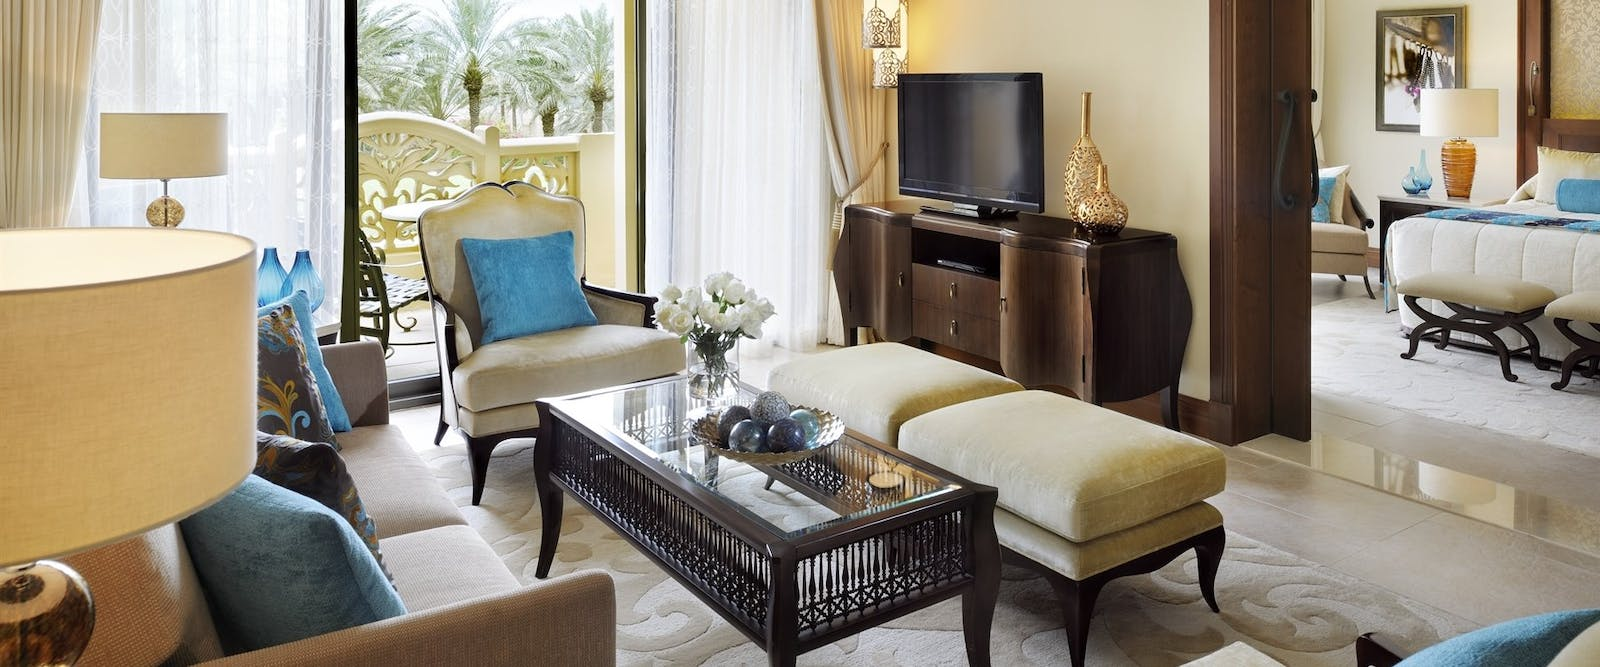 Superior Executive Suite at One&Only Royal Mirage - The Palace, Dubai